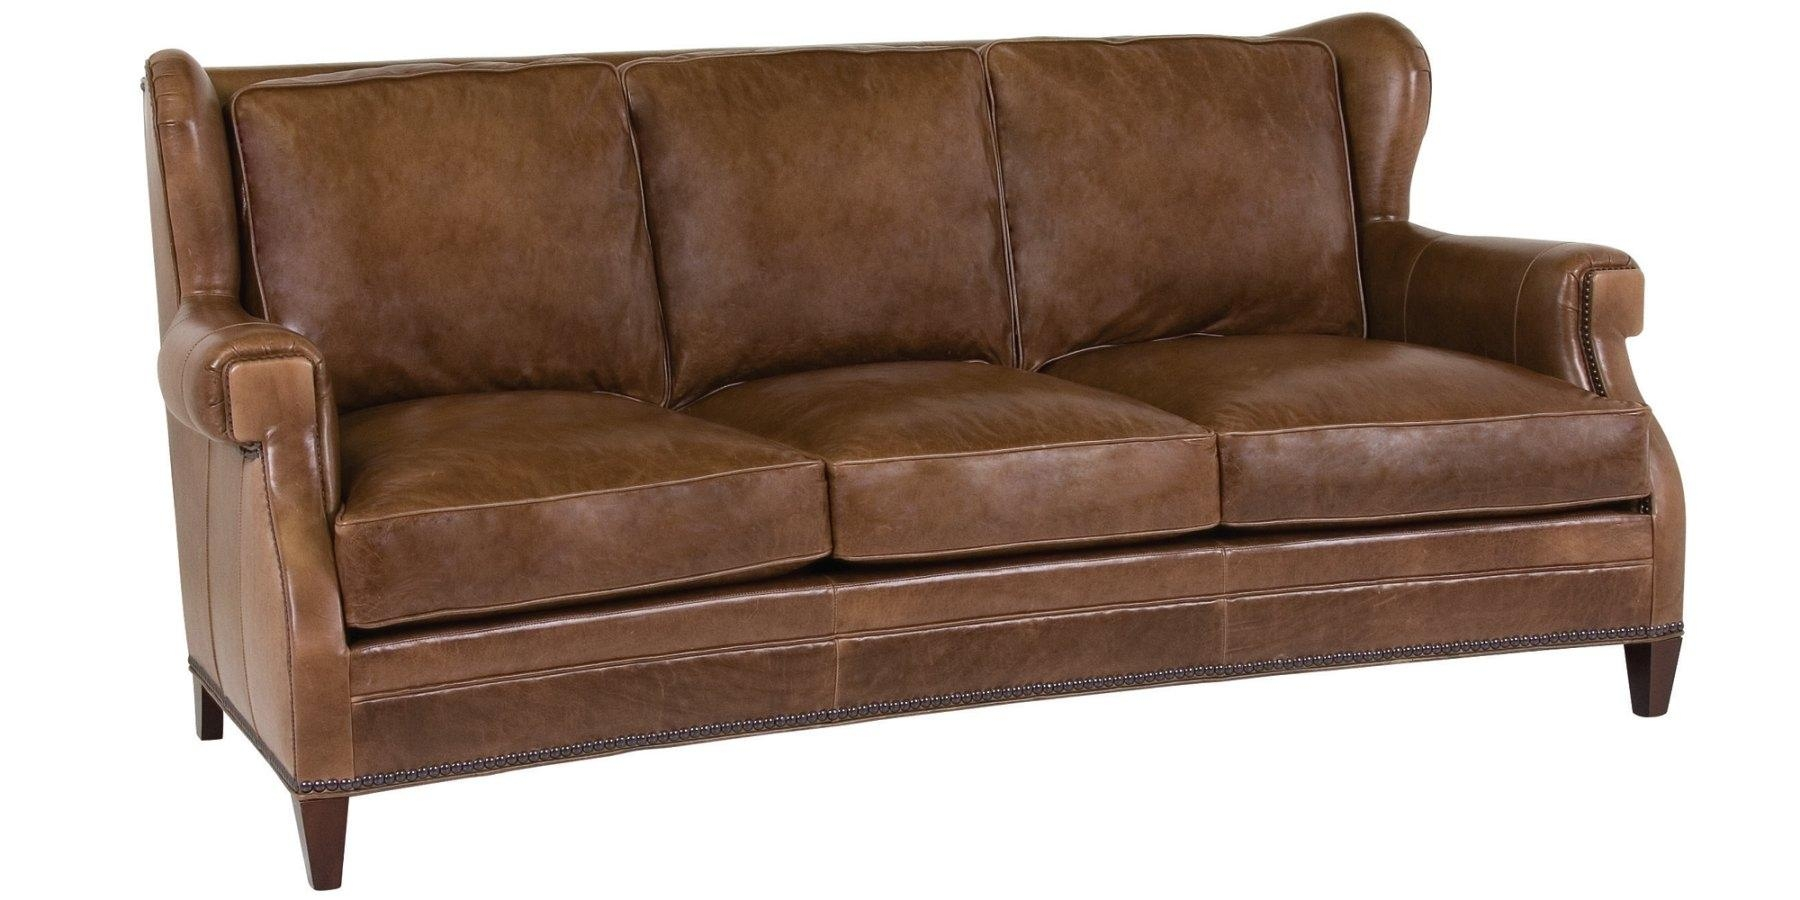 leather nailhead sofa set overman pod 20 43 choices of brown sofas with trim